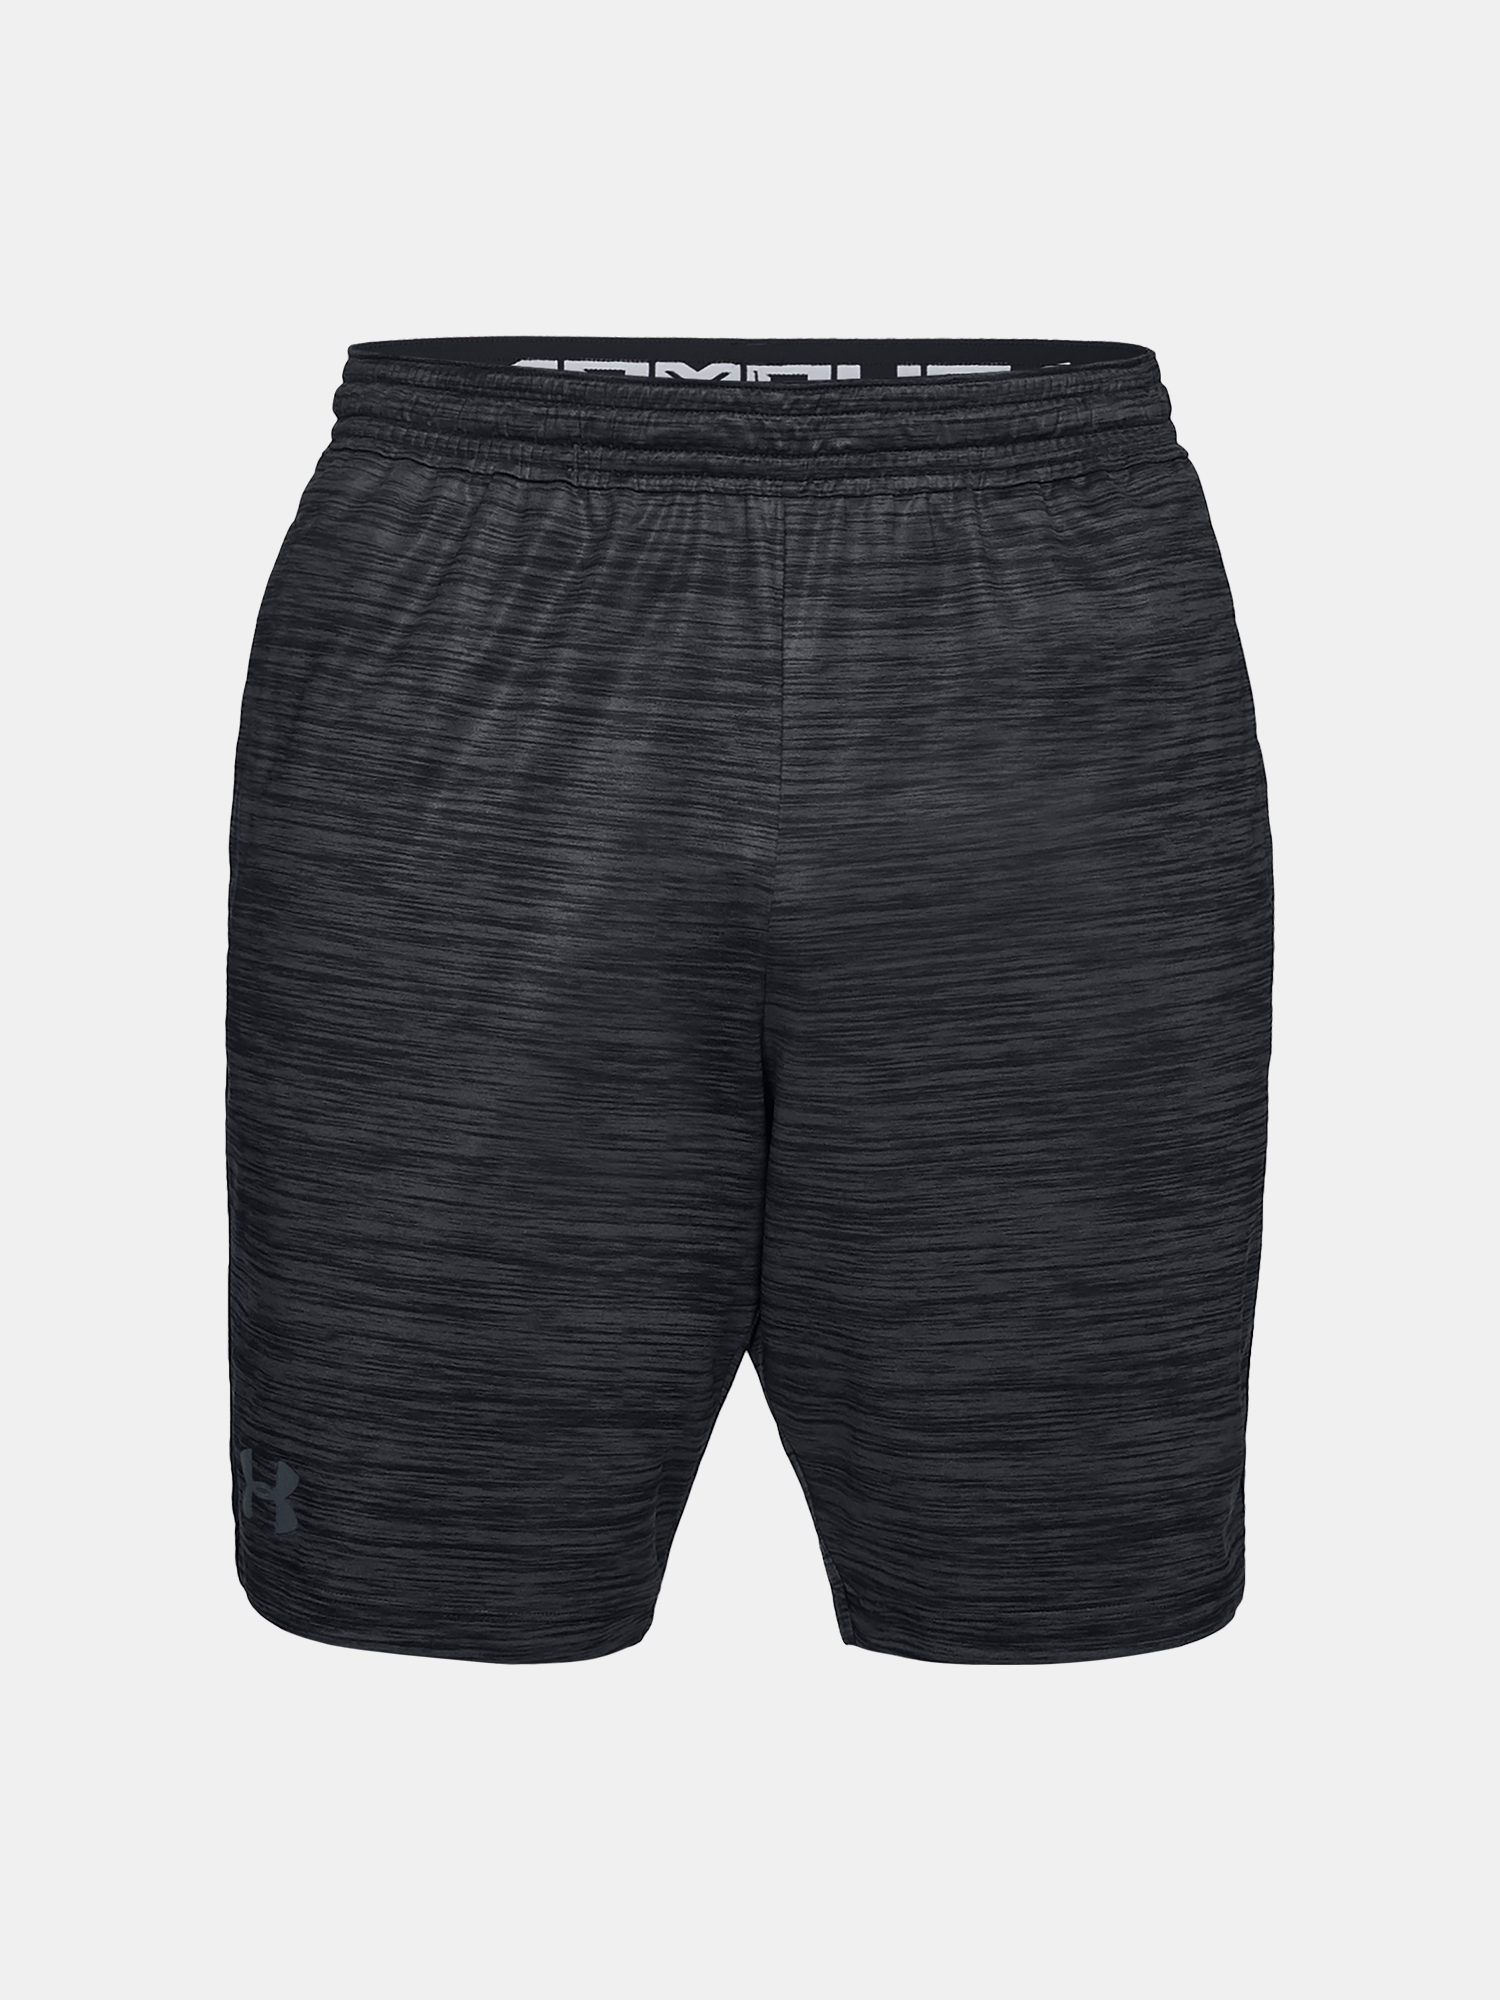 Kraťasy Under Armour UA MK-1 Twist Shorts-BLK (3)